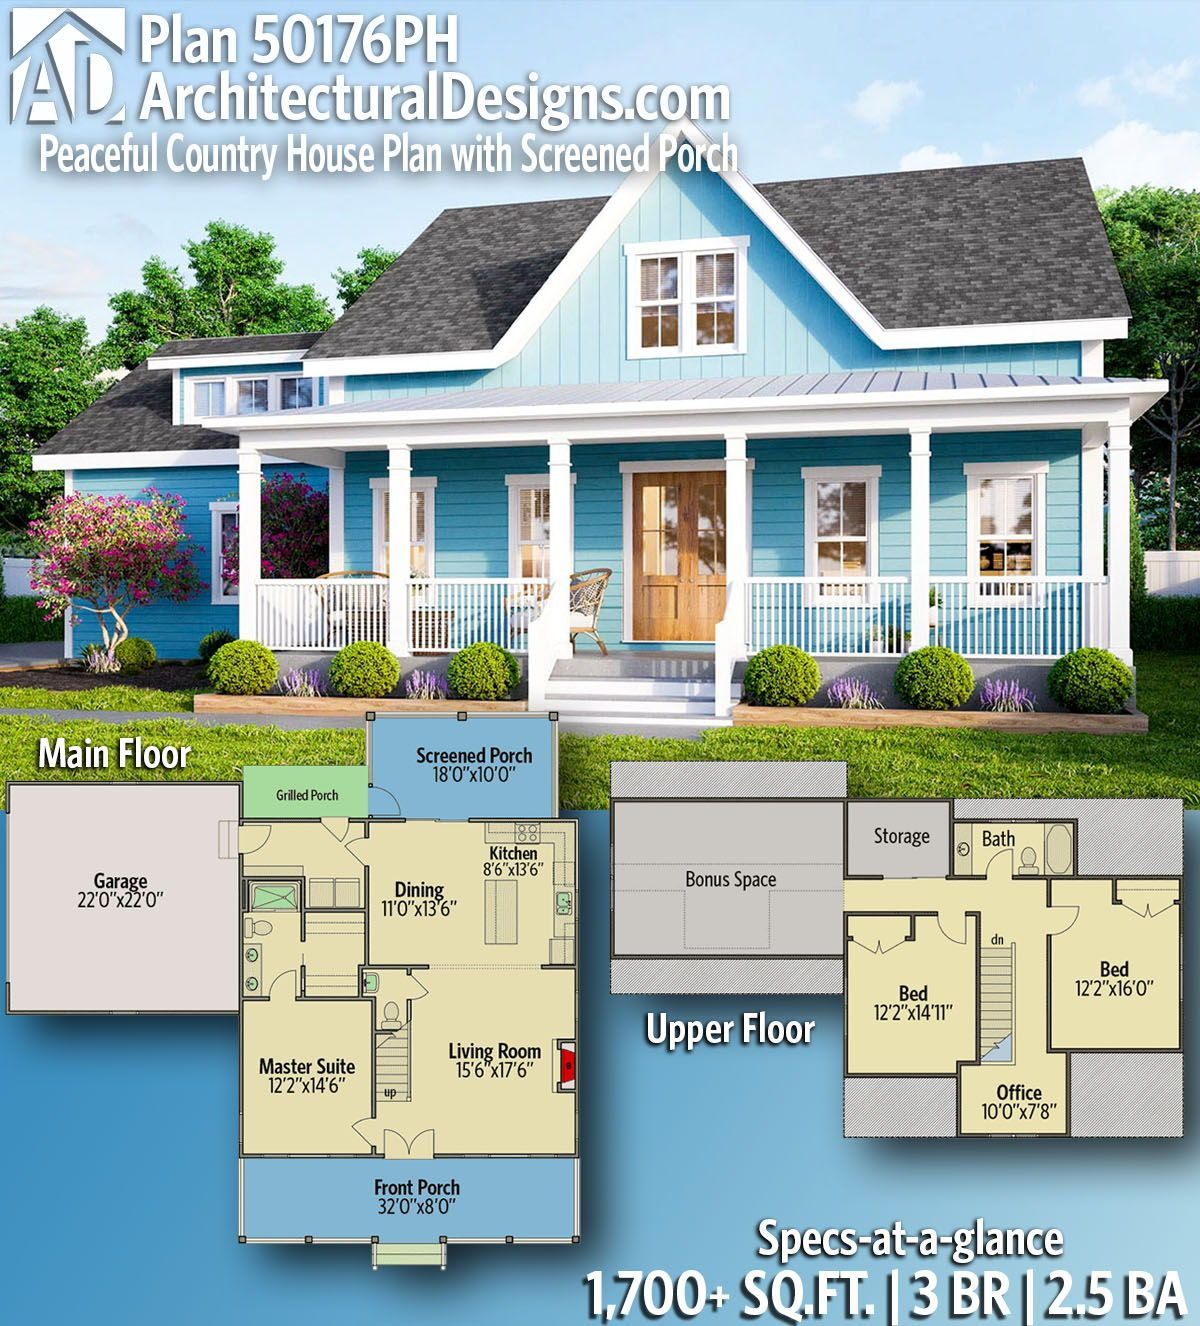 Plan 50176ph Peaceful Country House Plan With Screened Porch